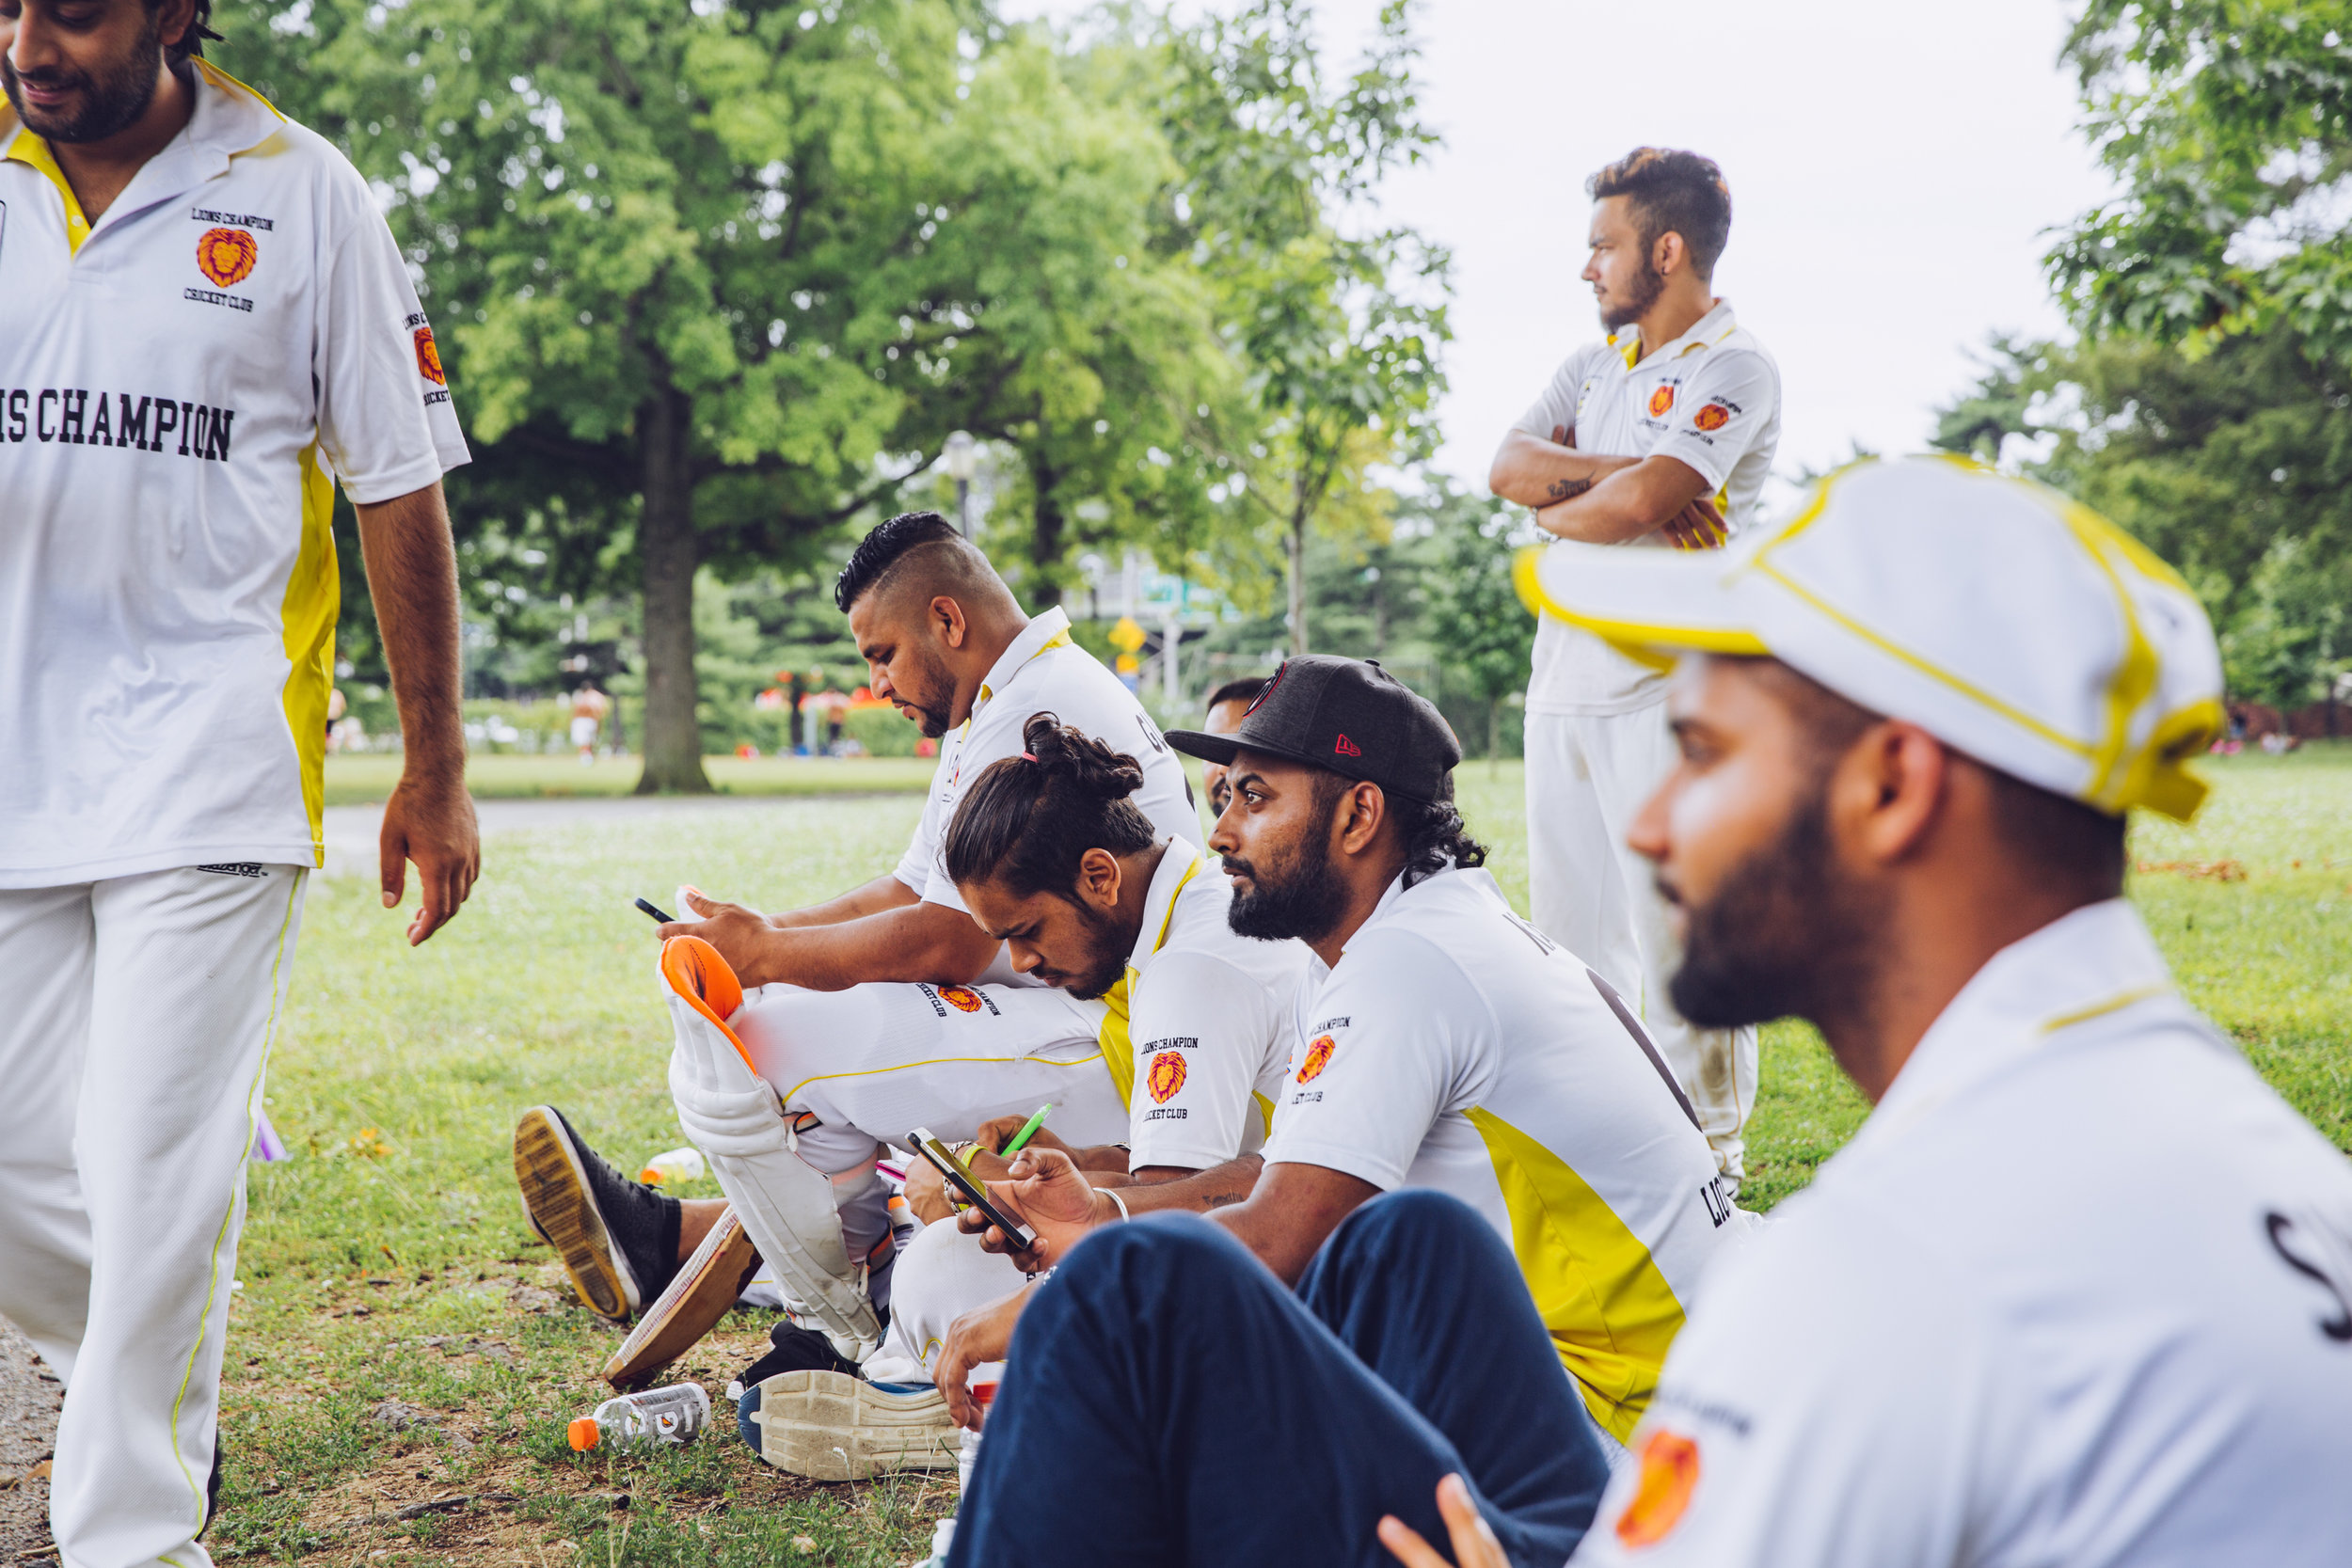 Cricket Players, Flushing Meadows Corona Park, Queens